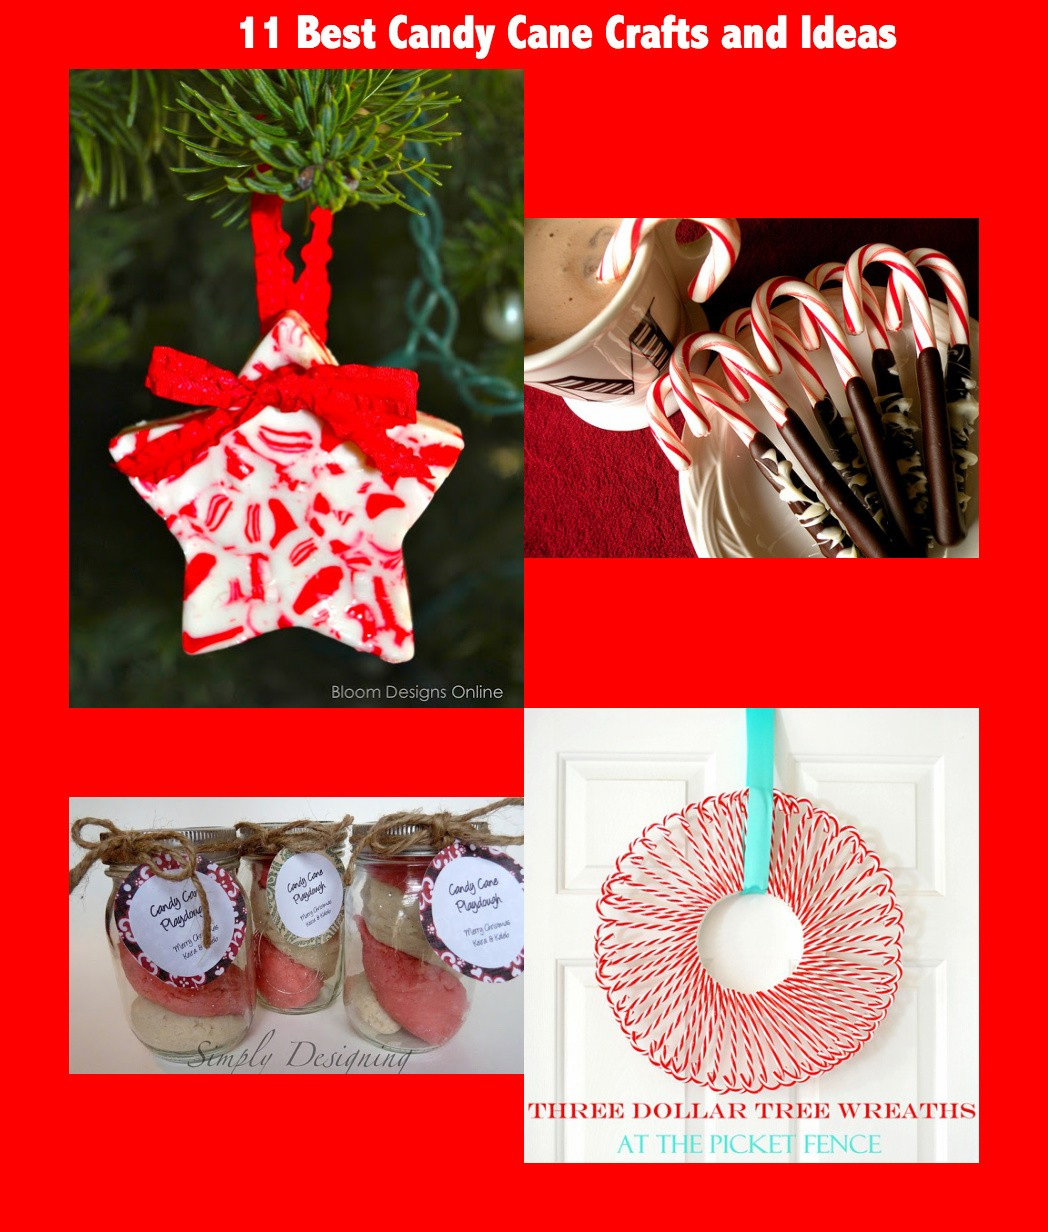 11 Best Candy Cane Crafts And Ideas